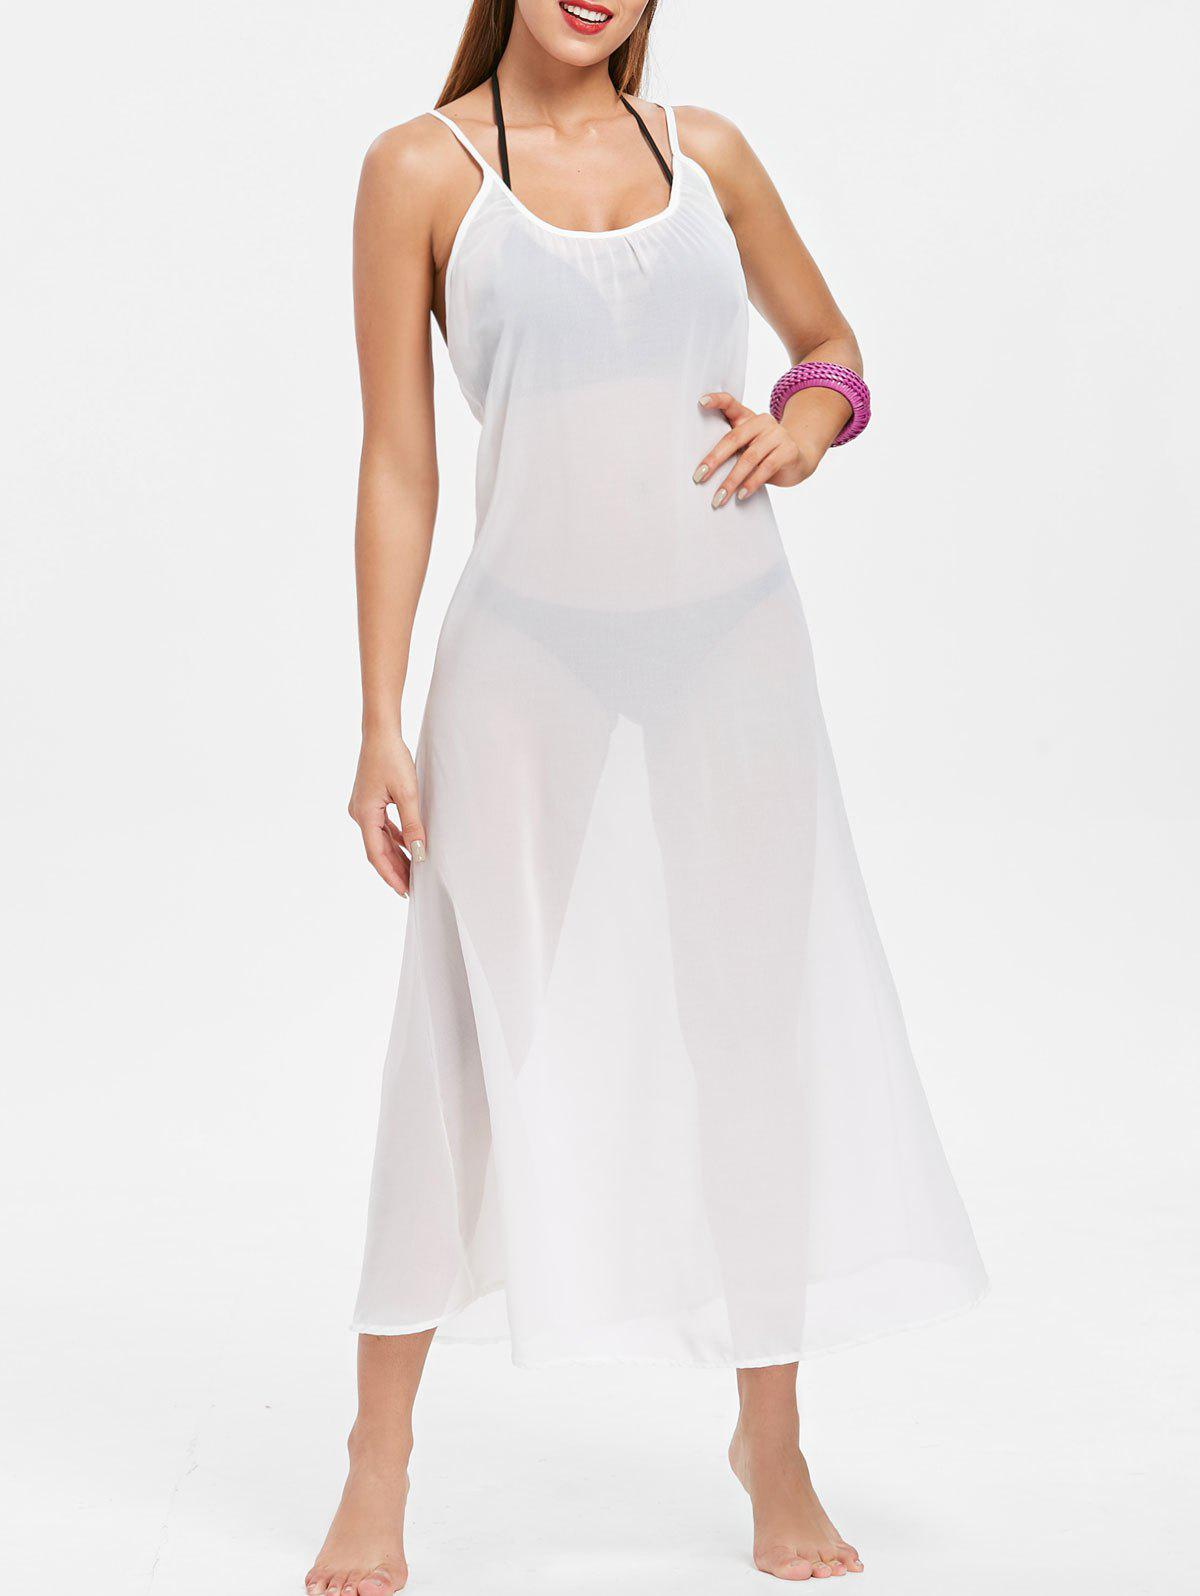 Discount Sexy Style Spaghetti Strap Sleeveless Cross-Back White Maxi Dress For Women